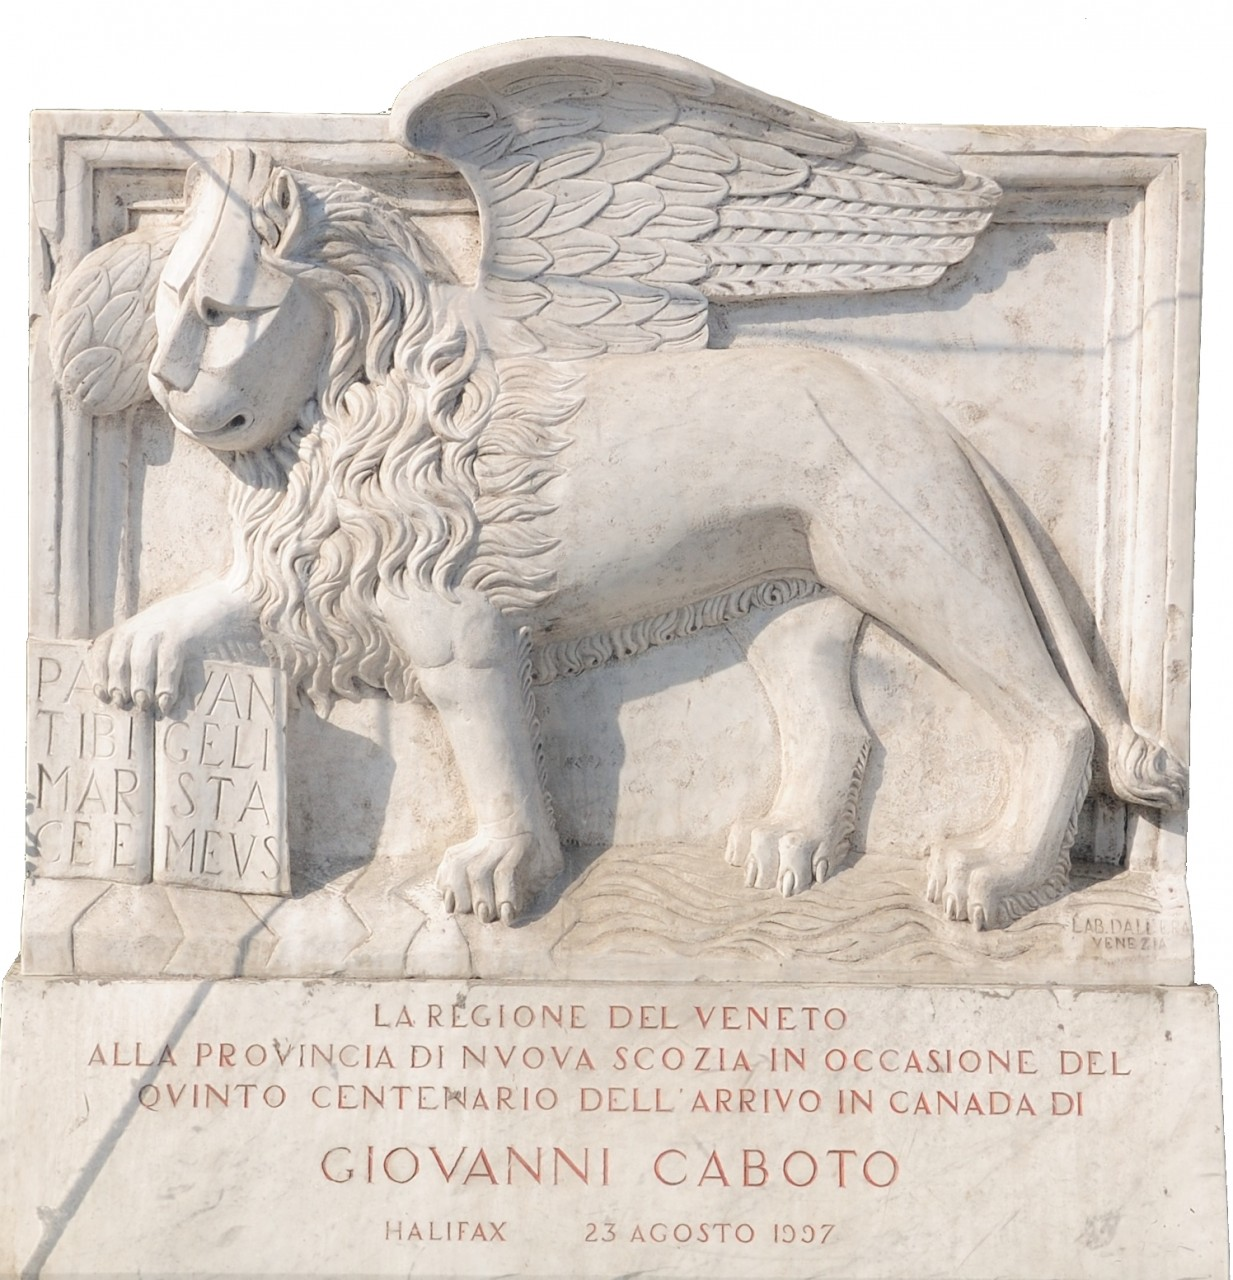 Giovanni Caboto, navigator and explorer